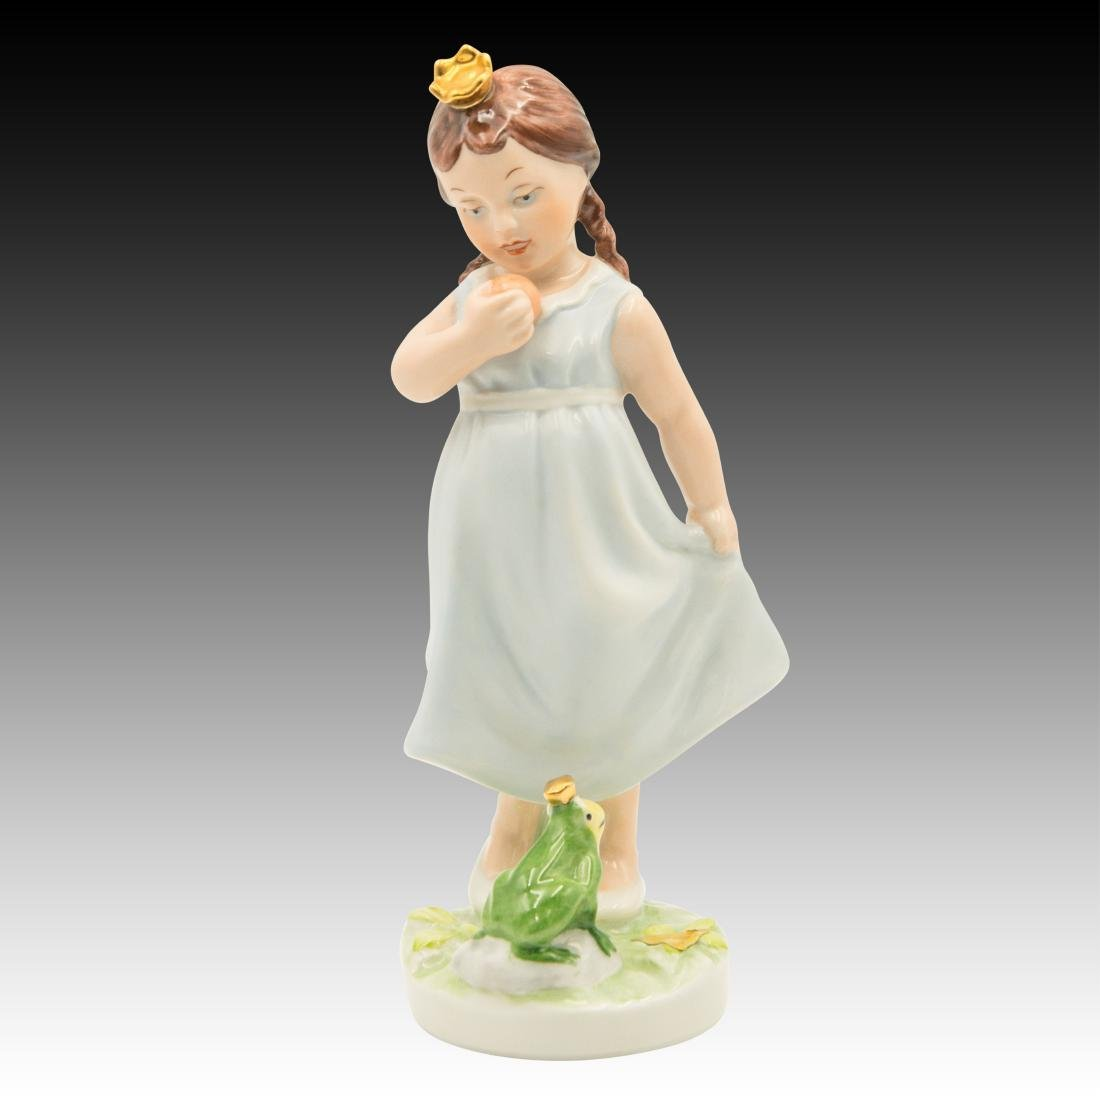 Royal Dux Princess and the Frog Figurine - 2